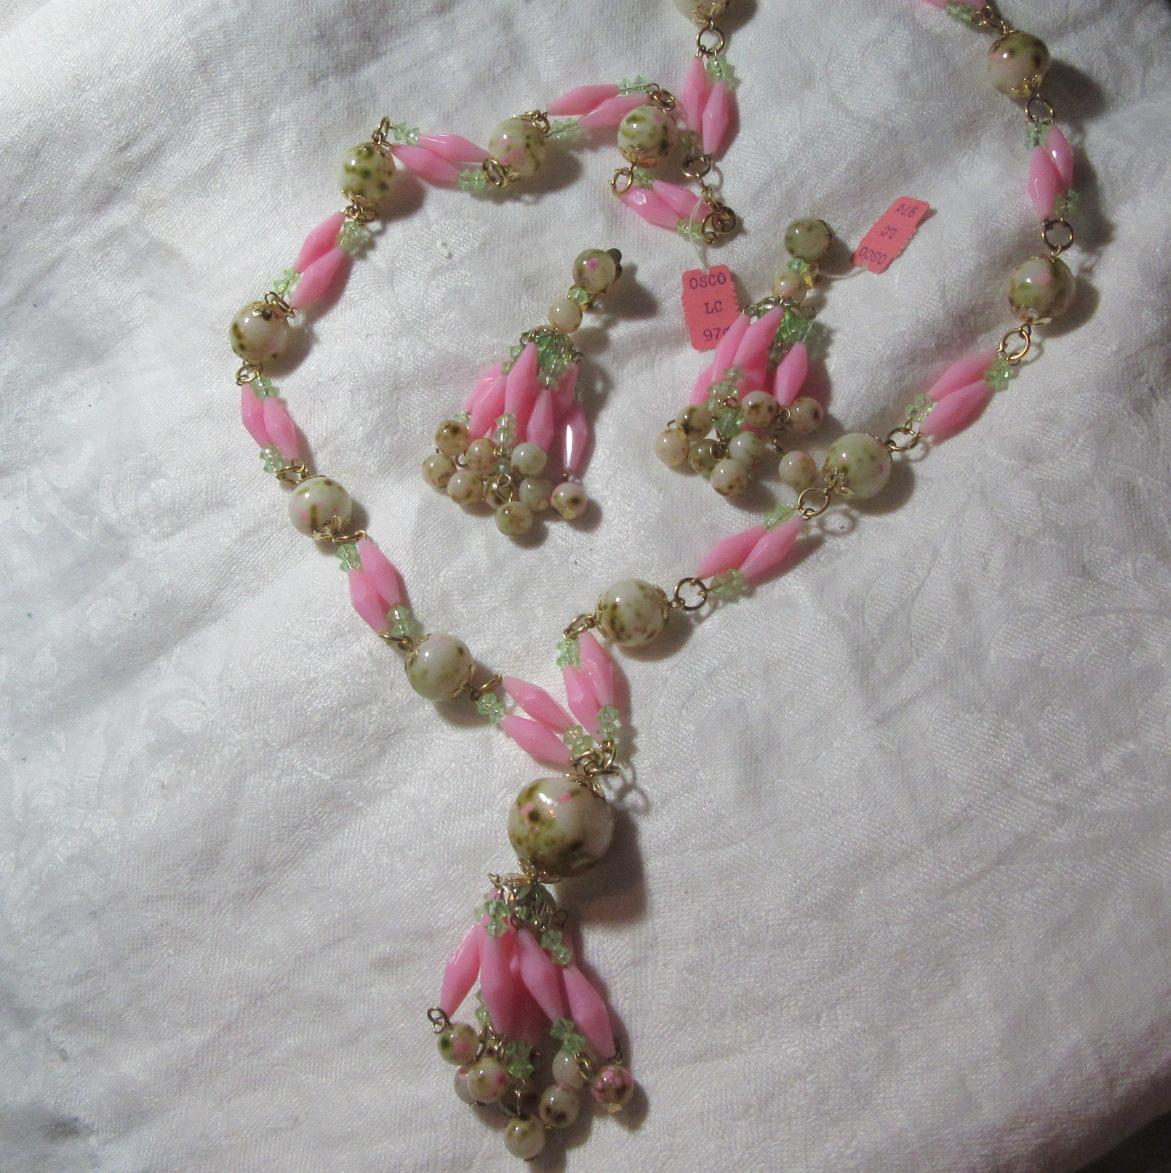 Old Hong Kong Plastic Beads Necklace & Clip Earring Set